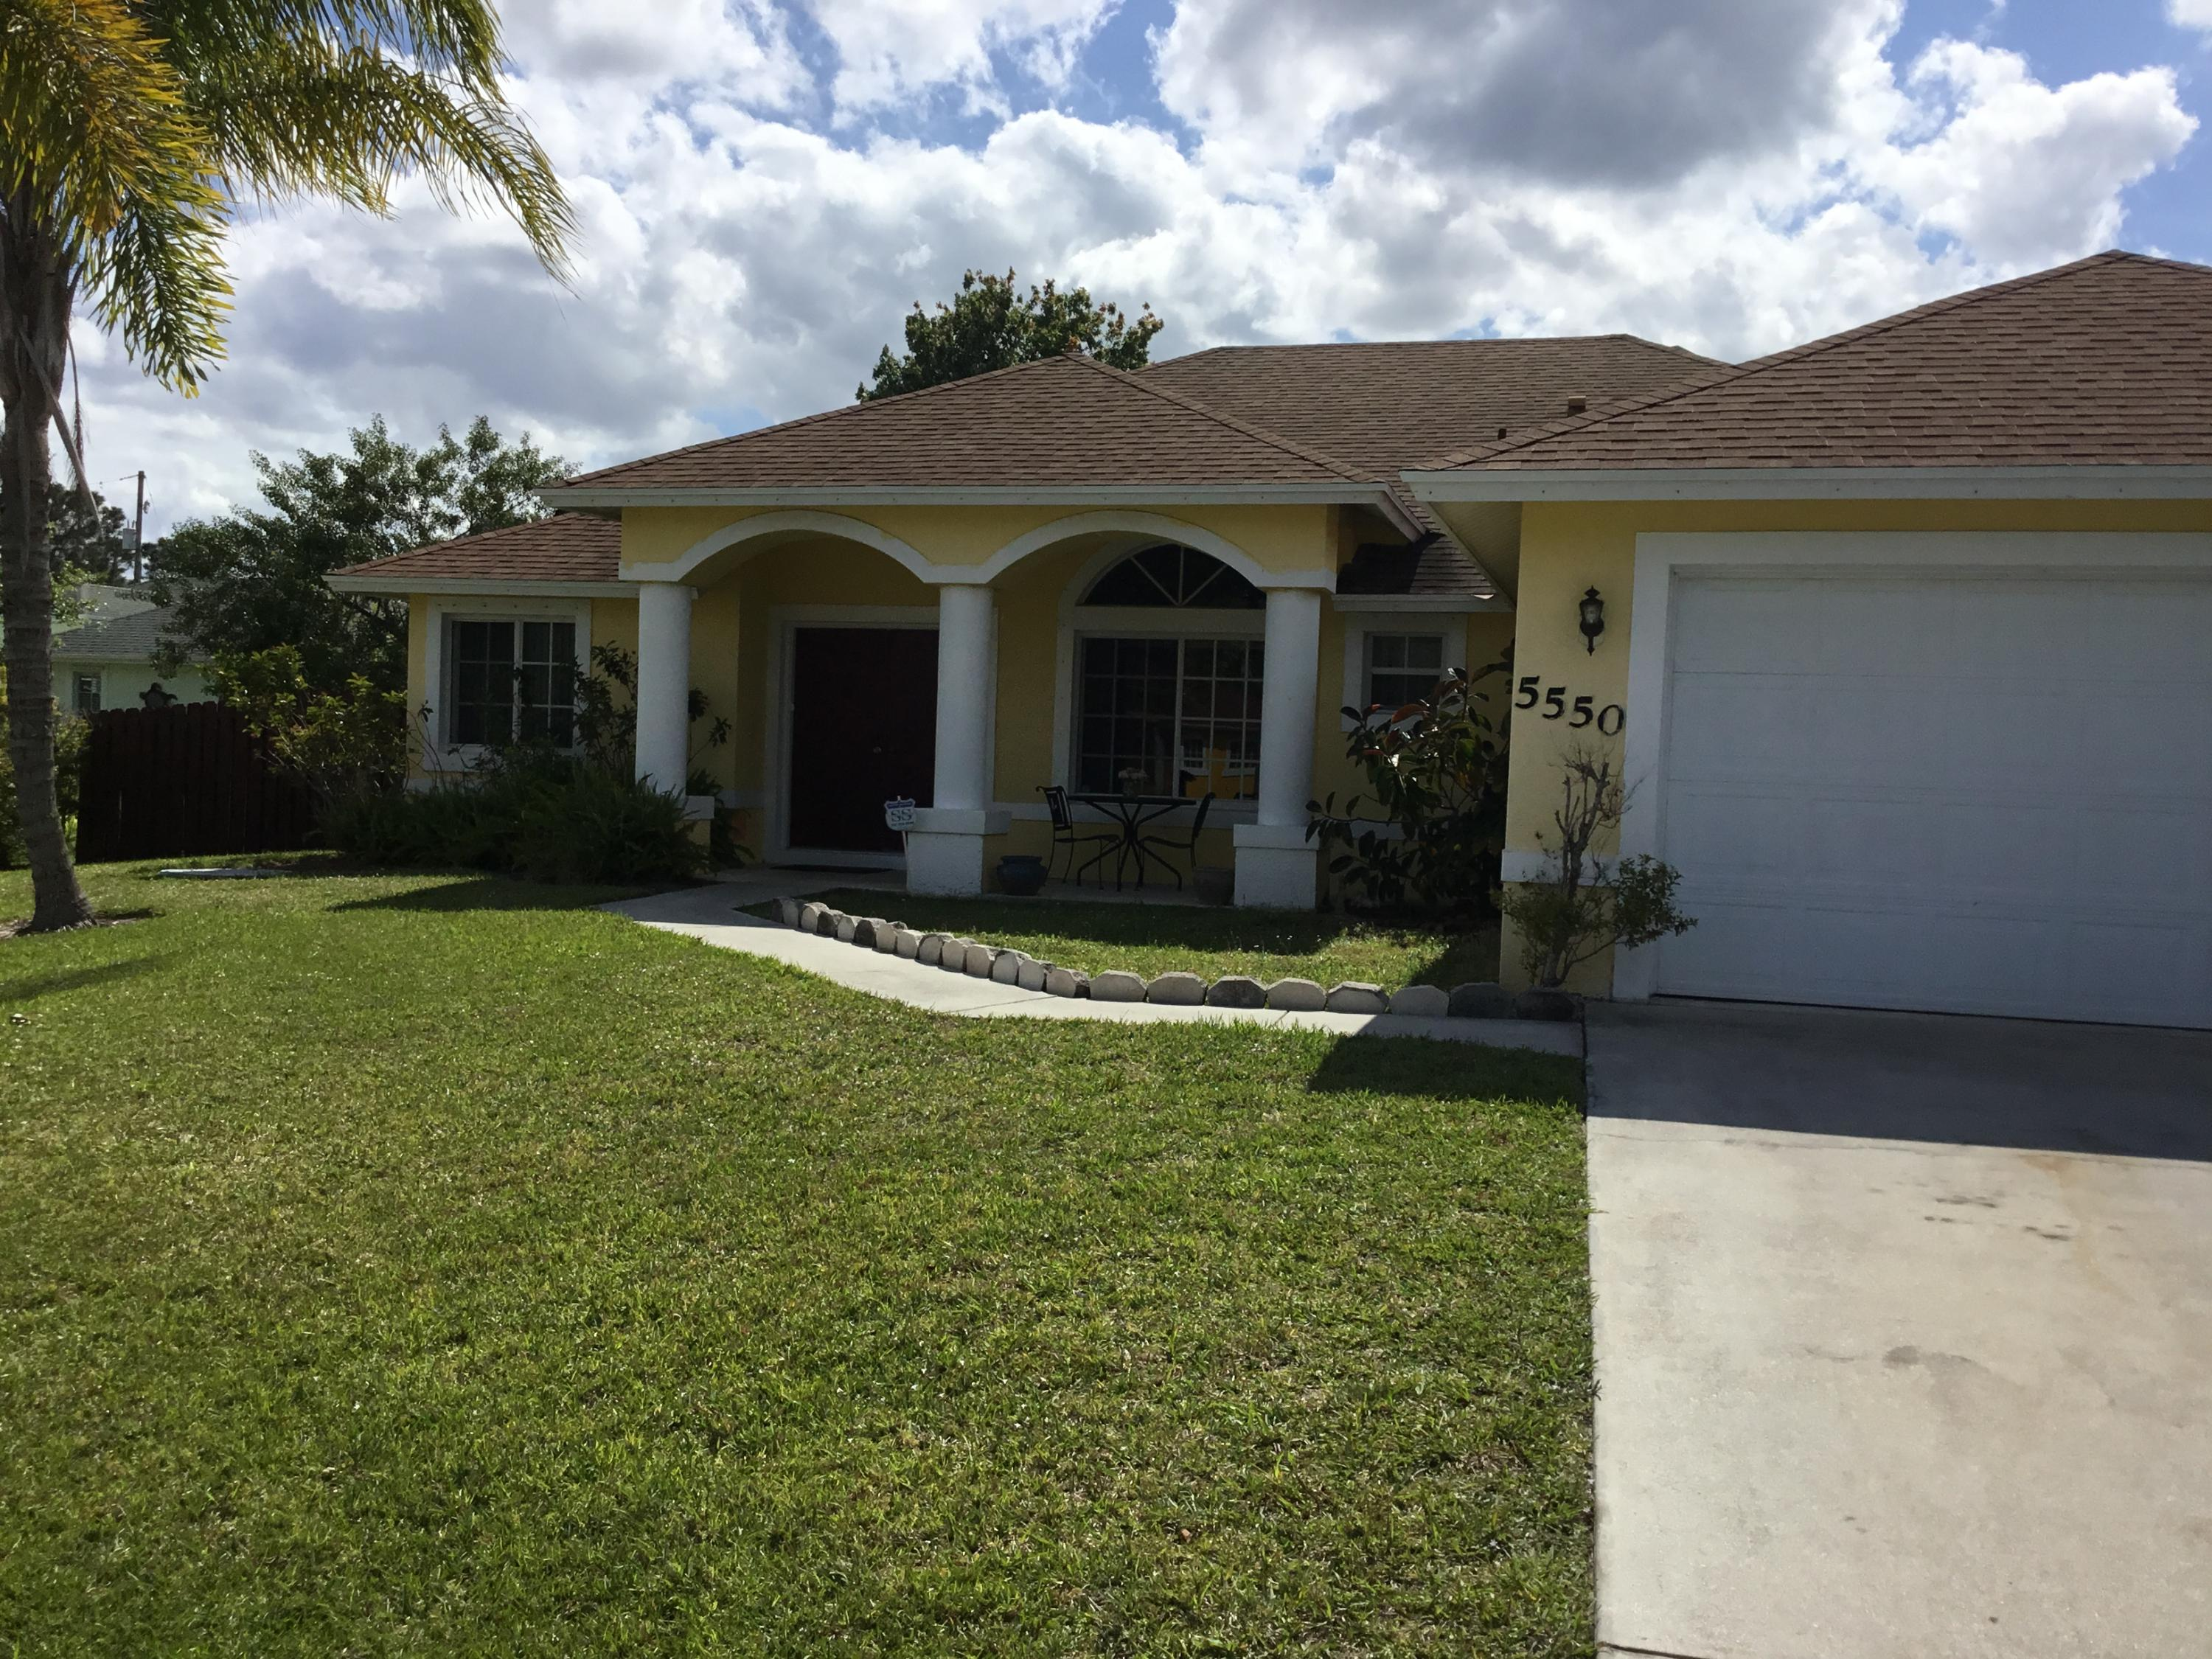 Three bedroom, 2 bath, 2 car garage on fenced, oversized lot, built by Majestic. Big kitchen, high ceilings, all oversized rooms on lot with plenty of room for an RV, race car,  or boat. 65 ft driveway and garage has built in cabinets.